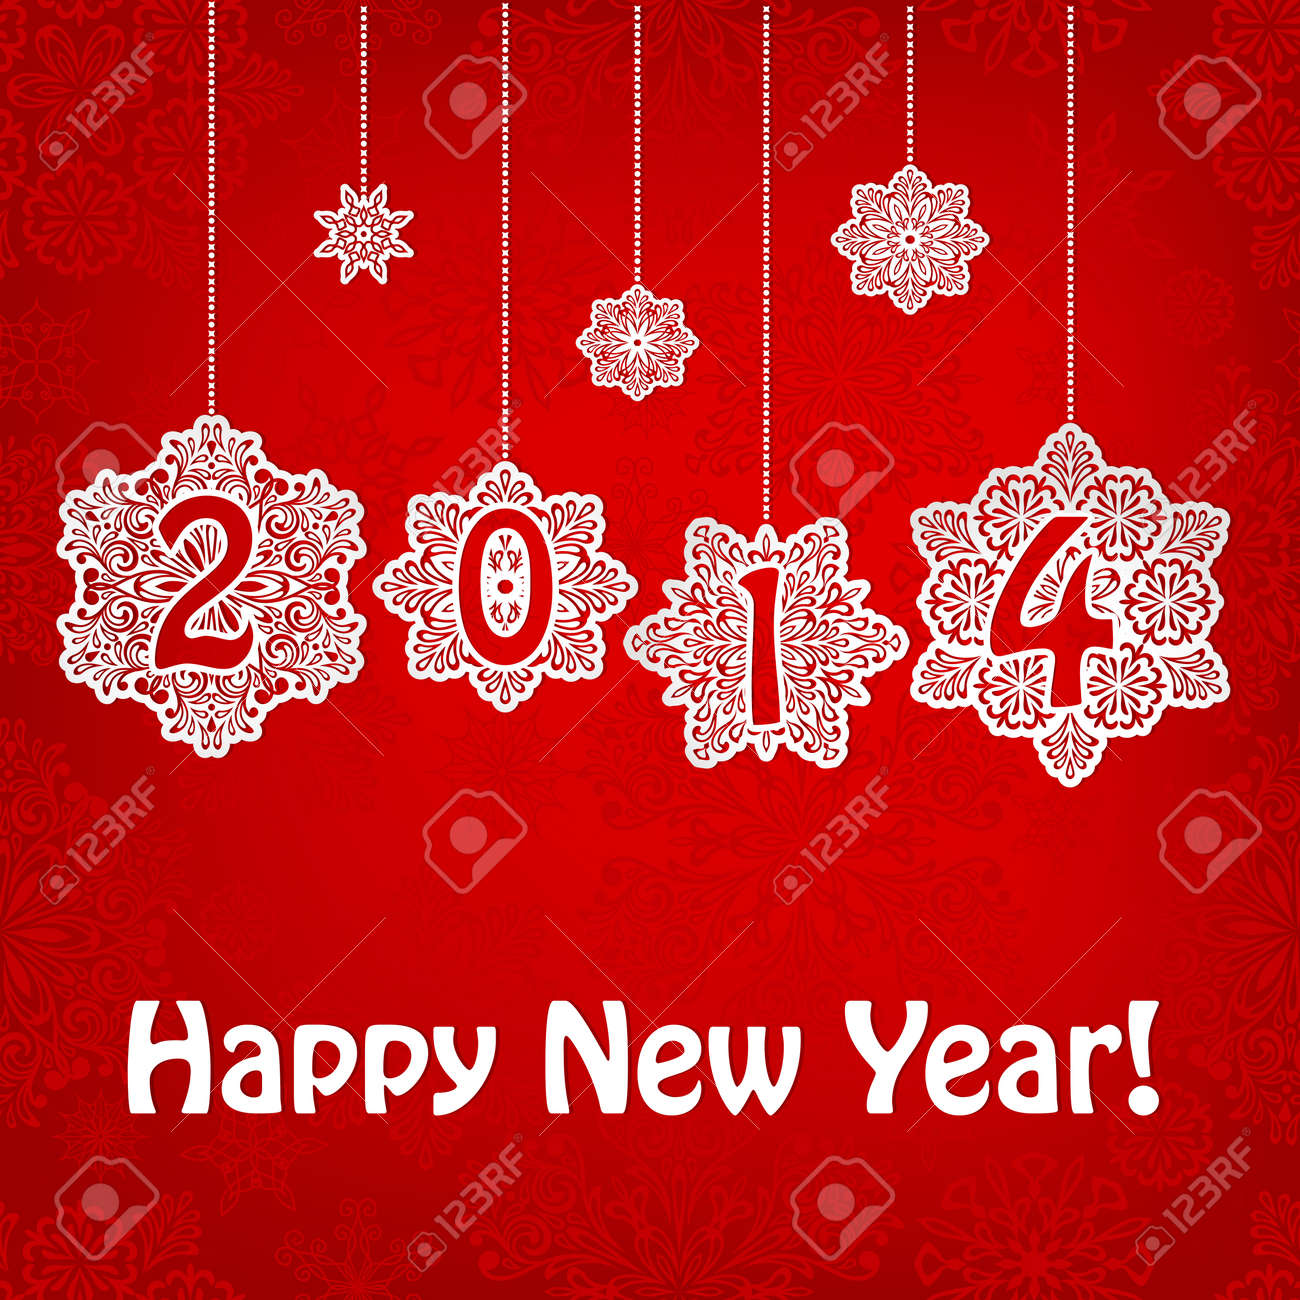 2014 New Year Greeting Card With Hanging Snowflakes And Greetings